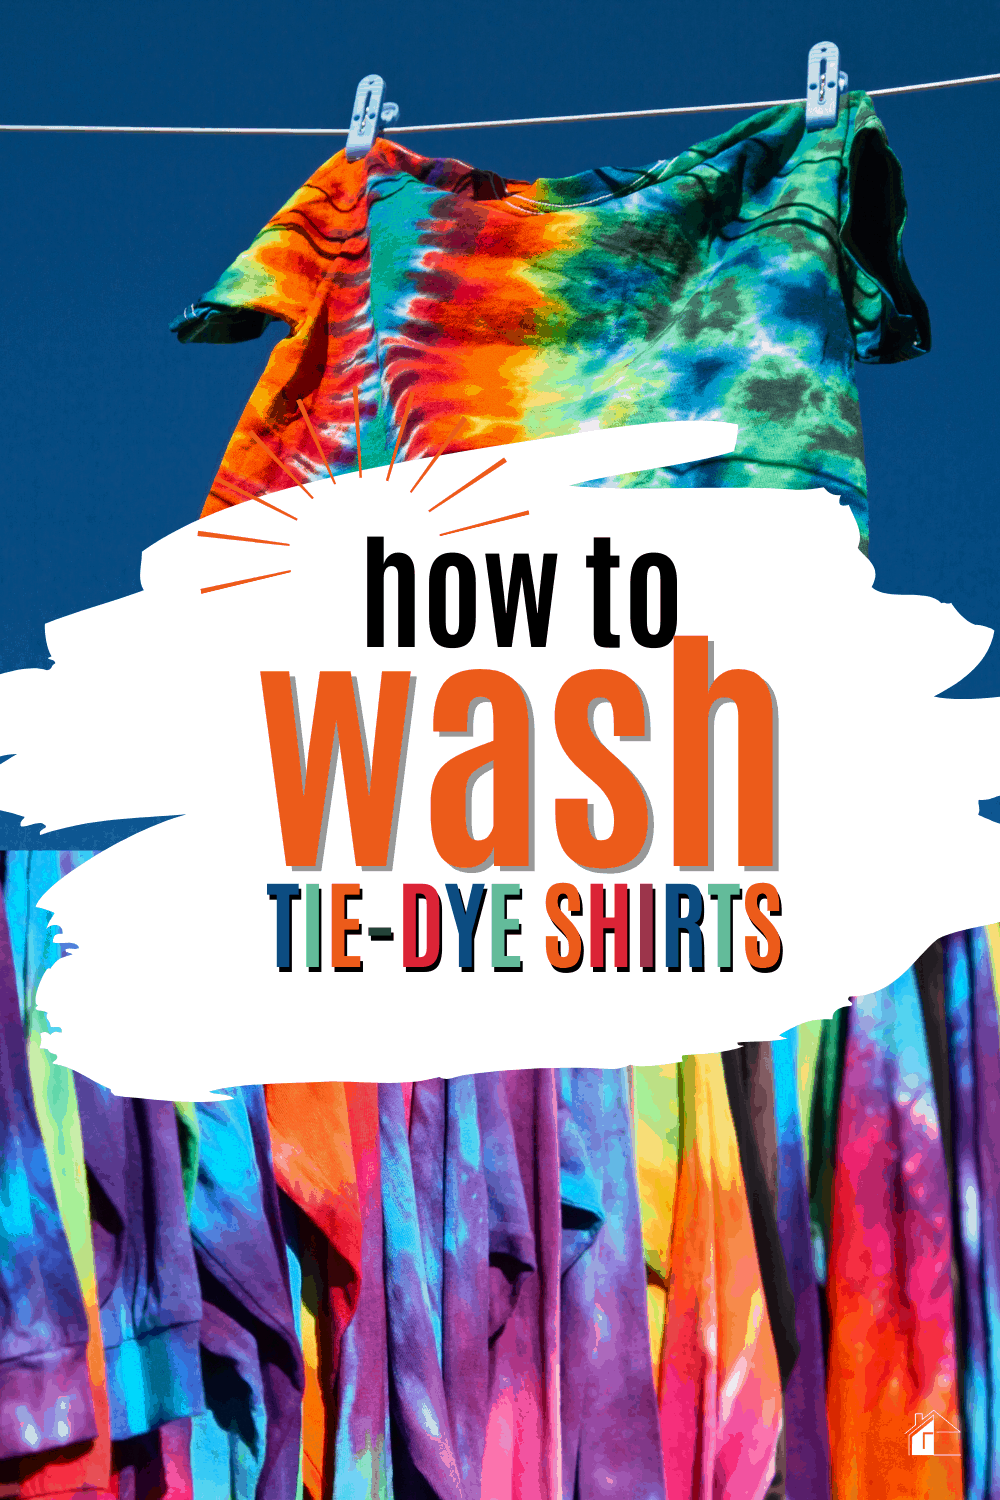 If you've ever had a tie-dye shirt, then you'll know that one of the hardest parts is knowing how to wash them. Here's what you need to know to keep your shirts looking great via @mystayathome